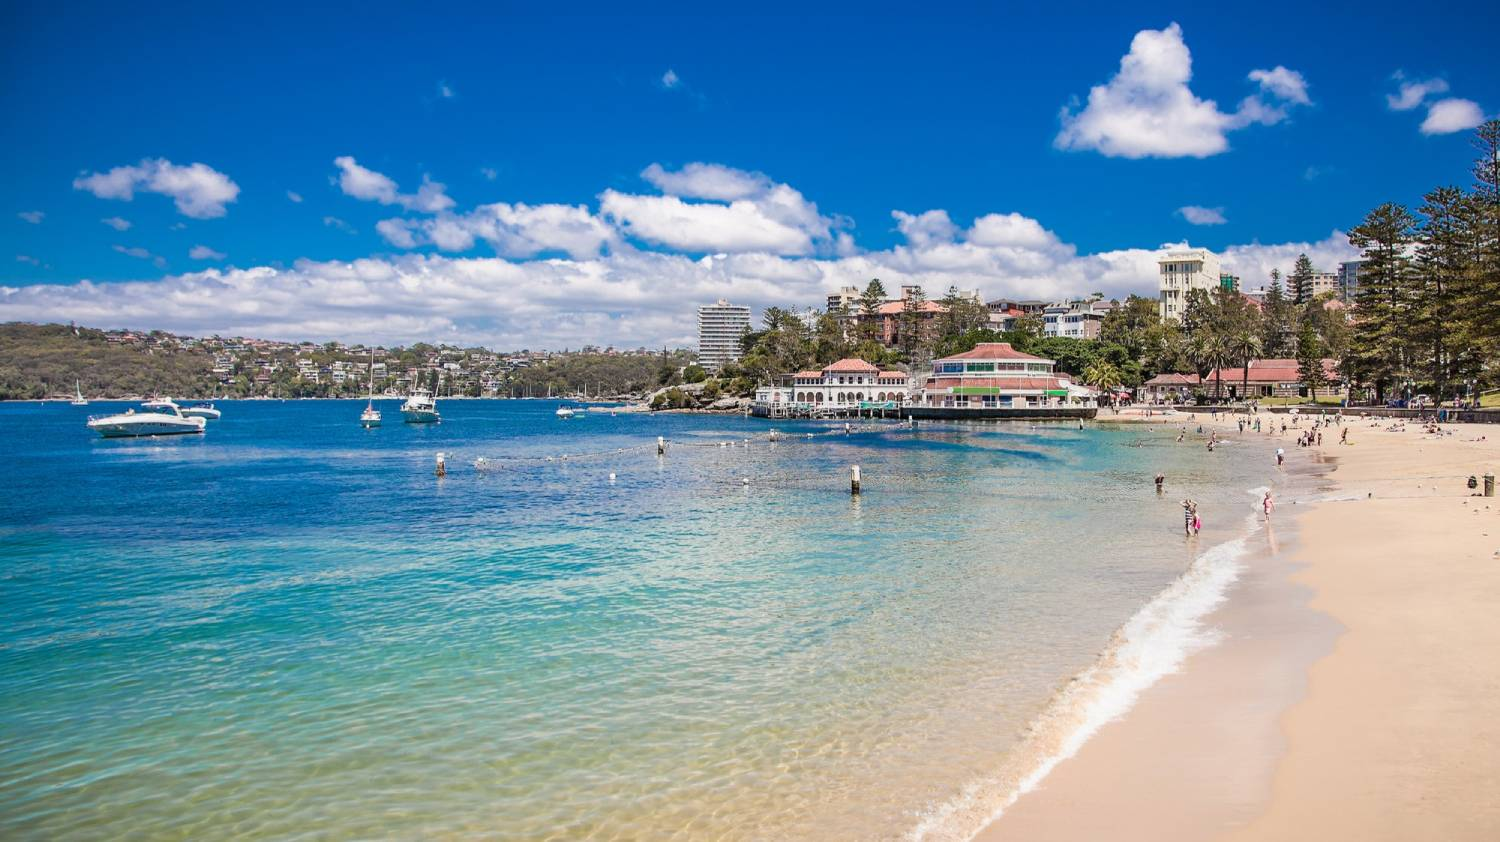 Manly Beach - Things To Do In Sydney